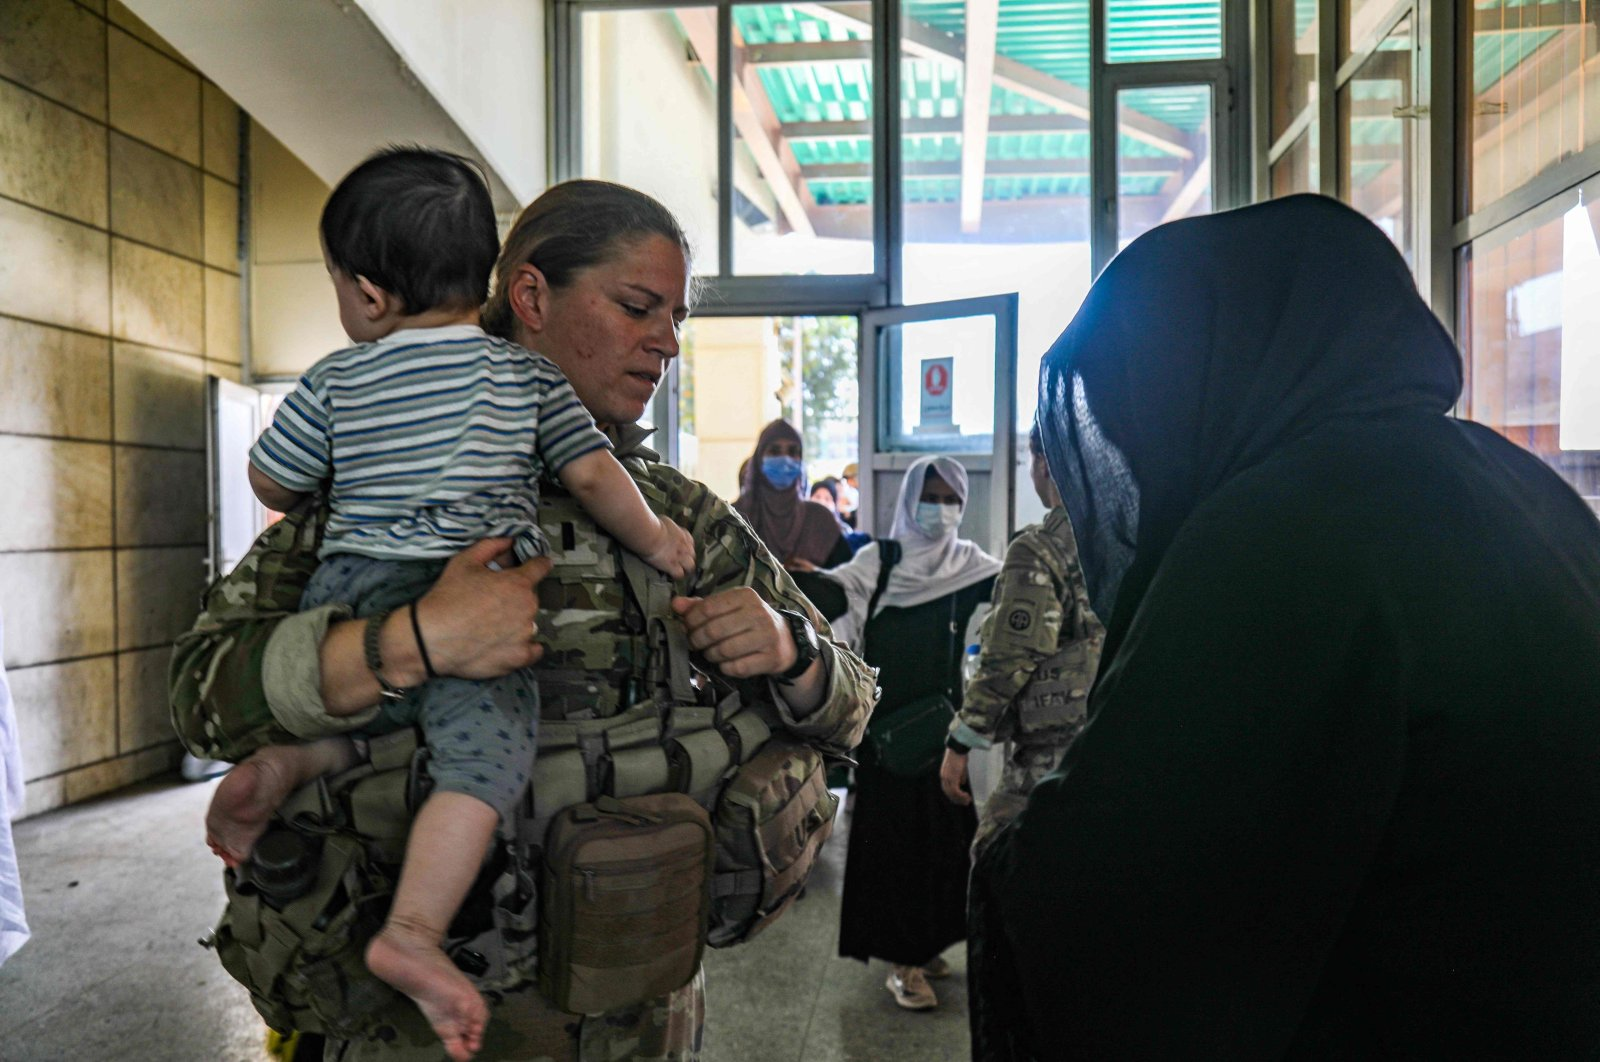 A medical officer assigned to the 82nd Airborne Division speaks with an Afghan woman and helps her with her child as part of the ongoing noncombatant evacuation of U.S. civilian personnel, Special Immigrant Visa applicants, and other at-risk individuals from Afghanistan from Hamid Karzai International Airport in Kabul, Afghanistan, Aug. 25, 2021. (AFP Photo)